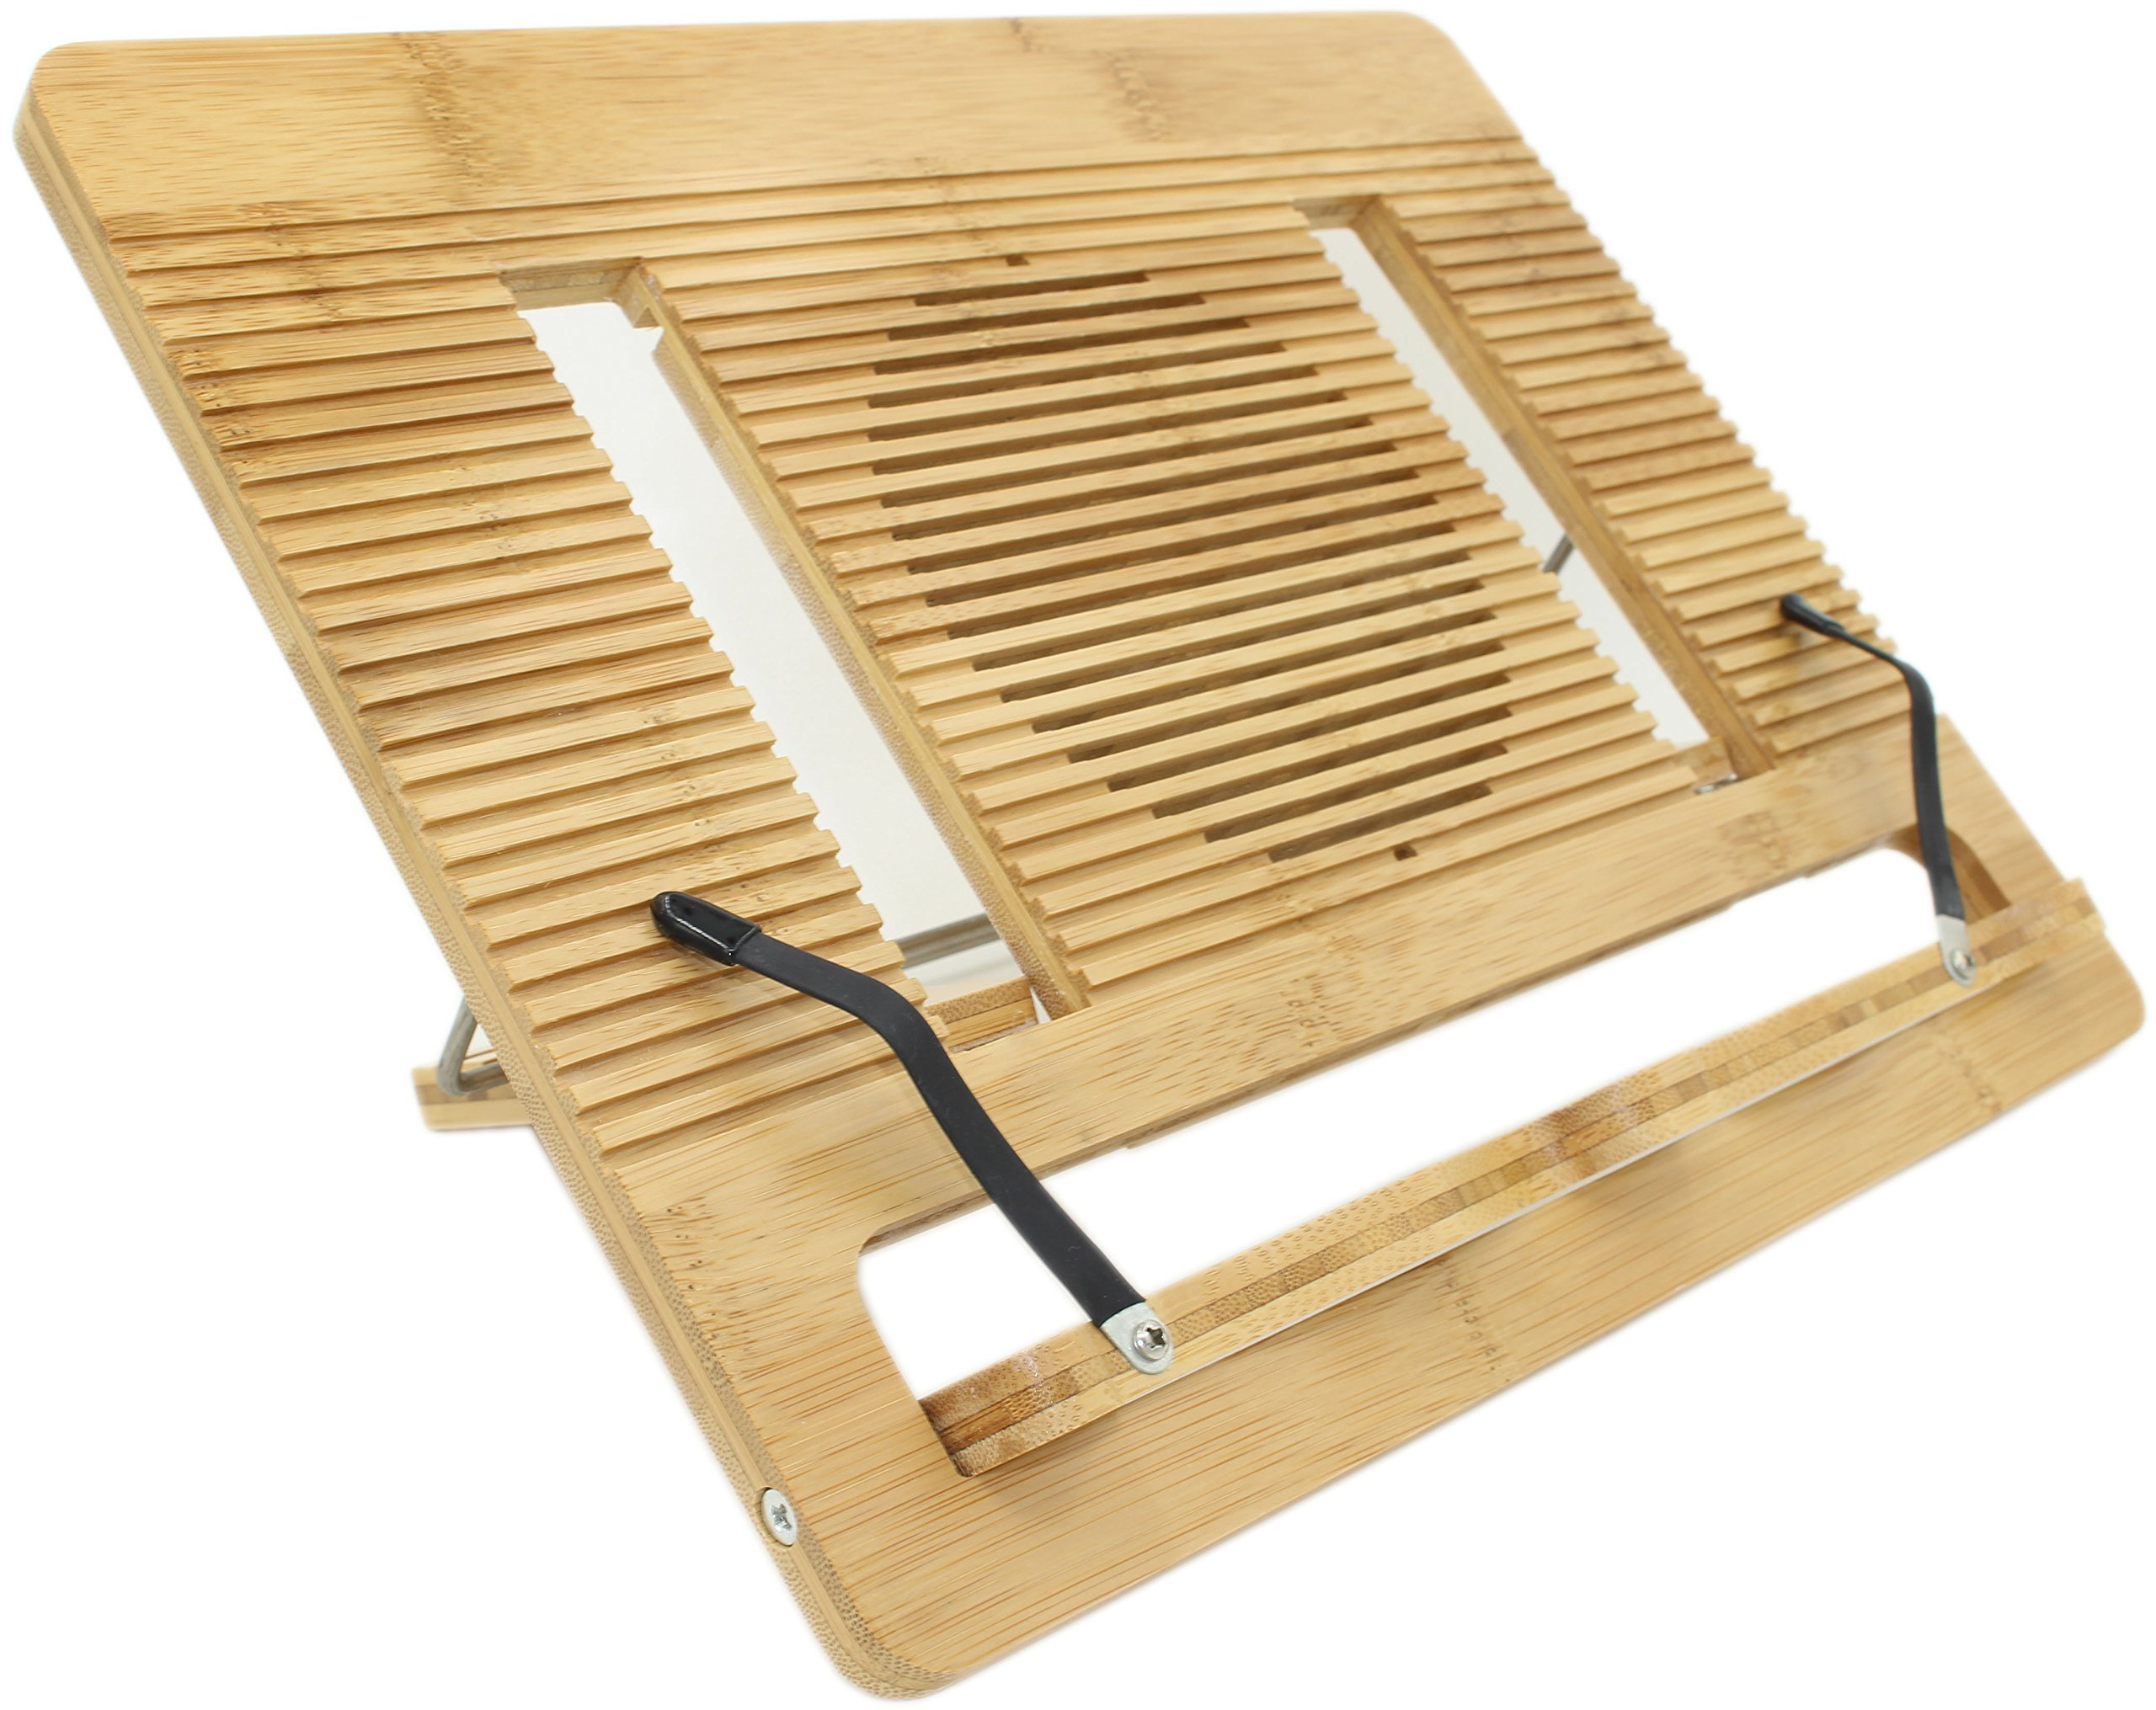 book stand ucharge bamboo adjustable and portable cookbook reading